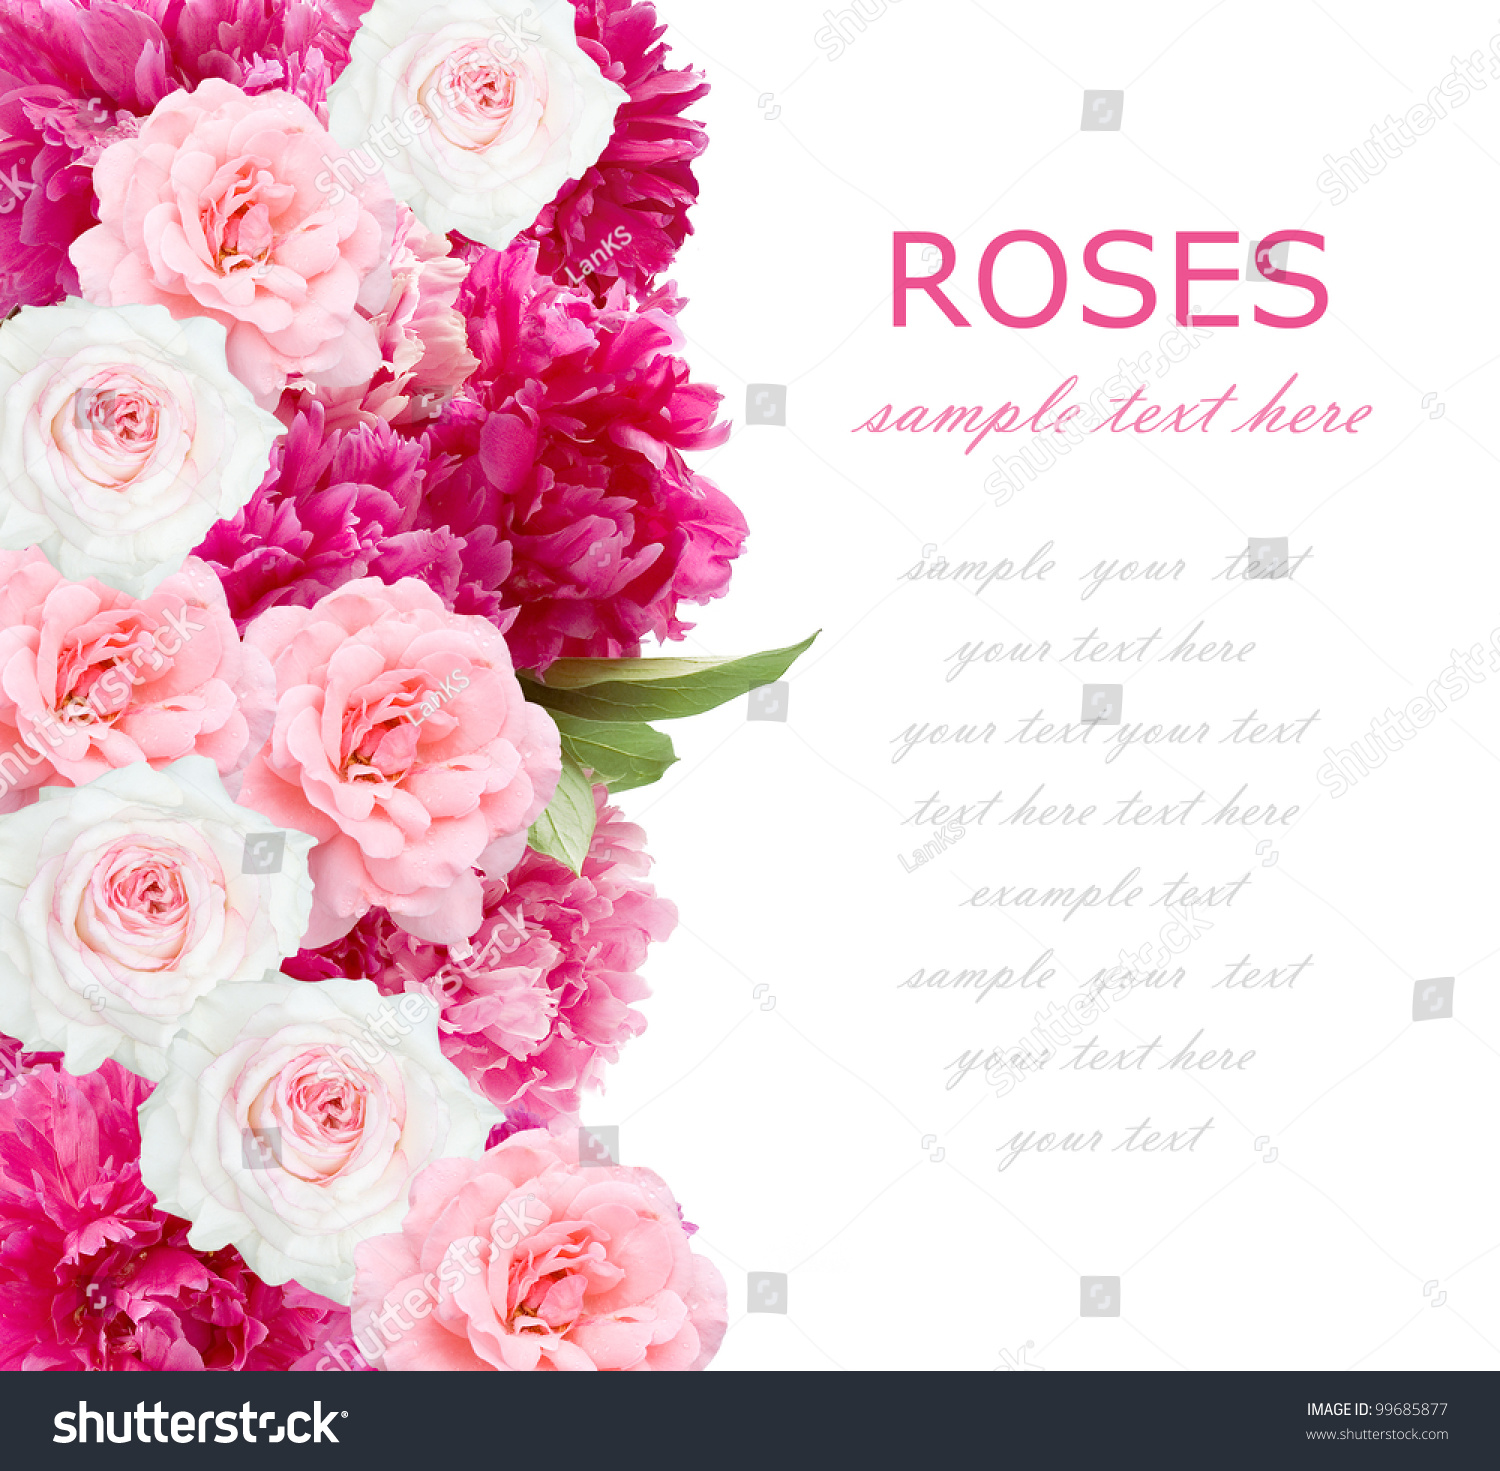 English rose garden wallpaper - Wedding Background Of Peonies And Roses Bunch Isolated On White With